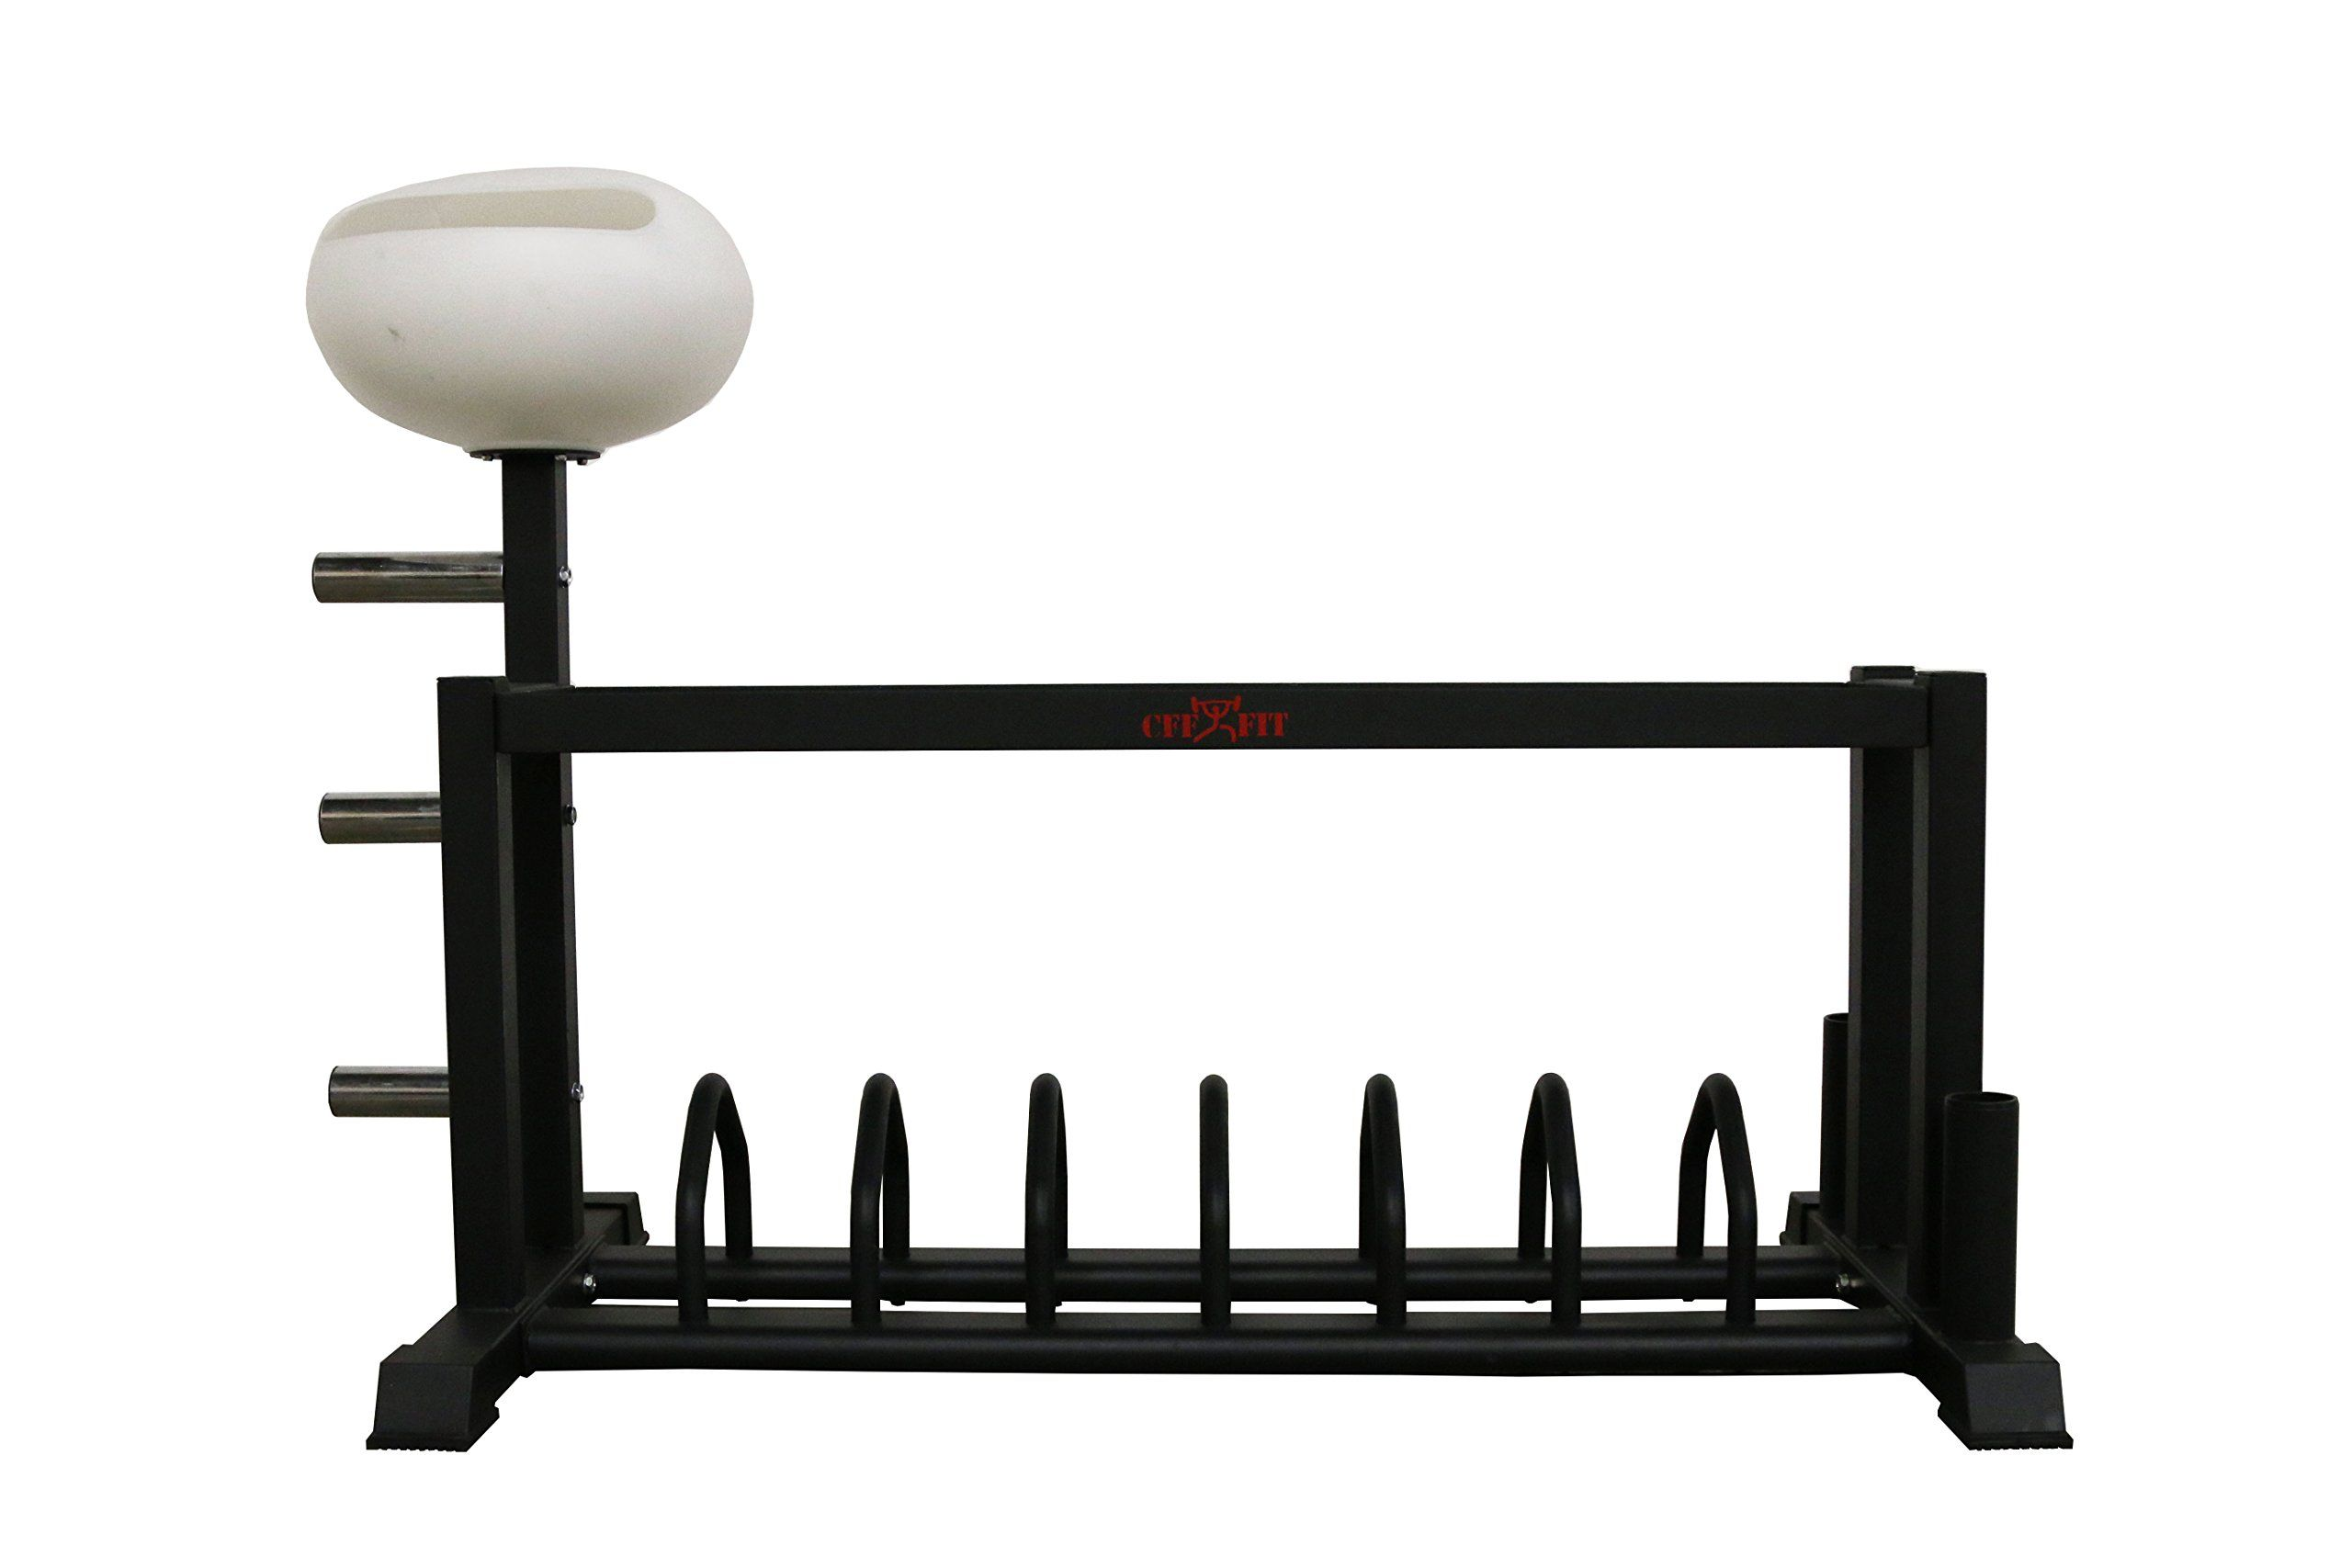 china bumper carriage rskjnfmuapvq storage weight product plate body rack building olympic